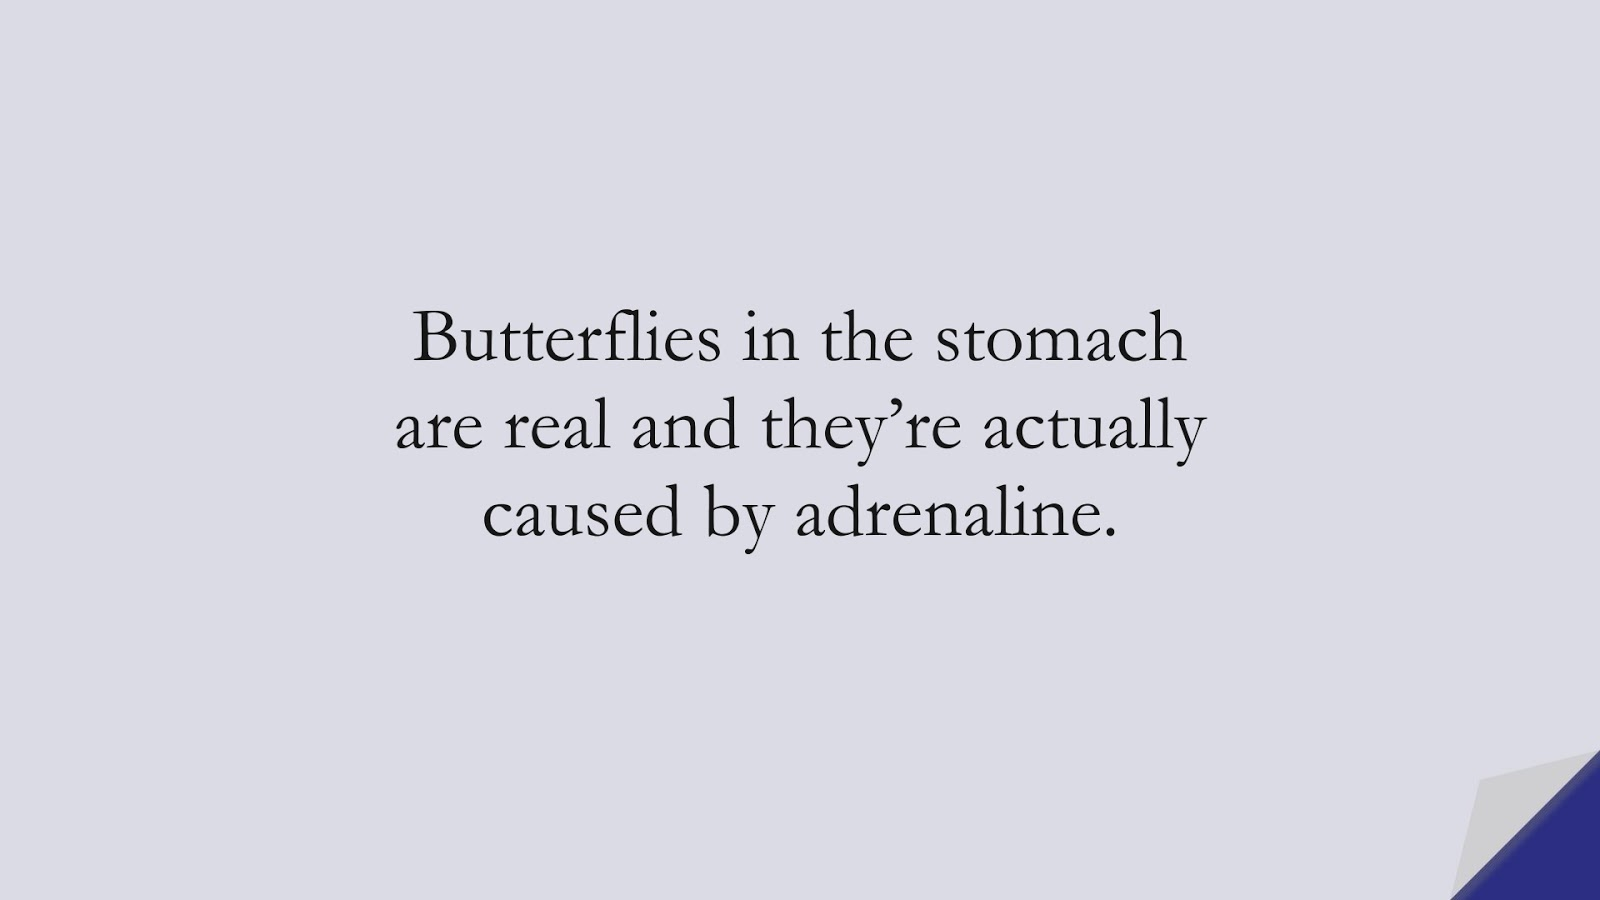 Butterflies in the stomach are real and they're actually caused by adrenaline.FALSE